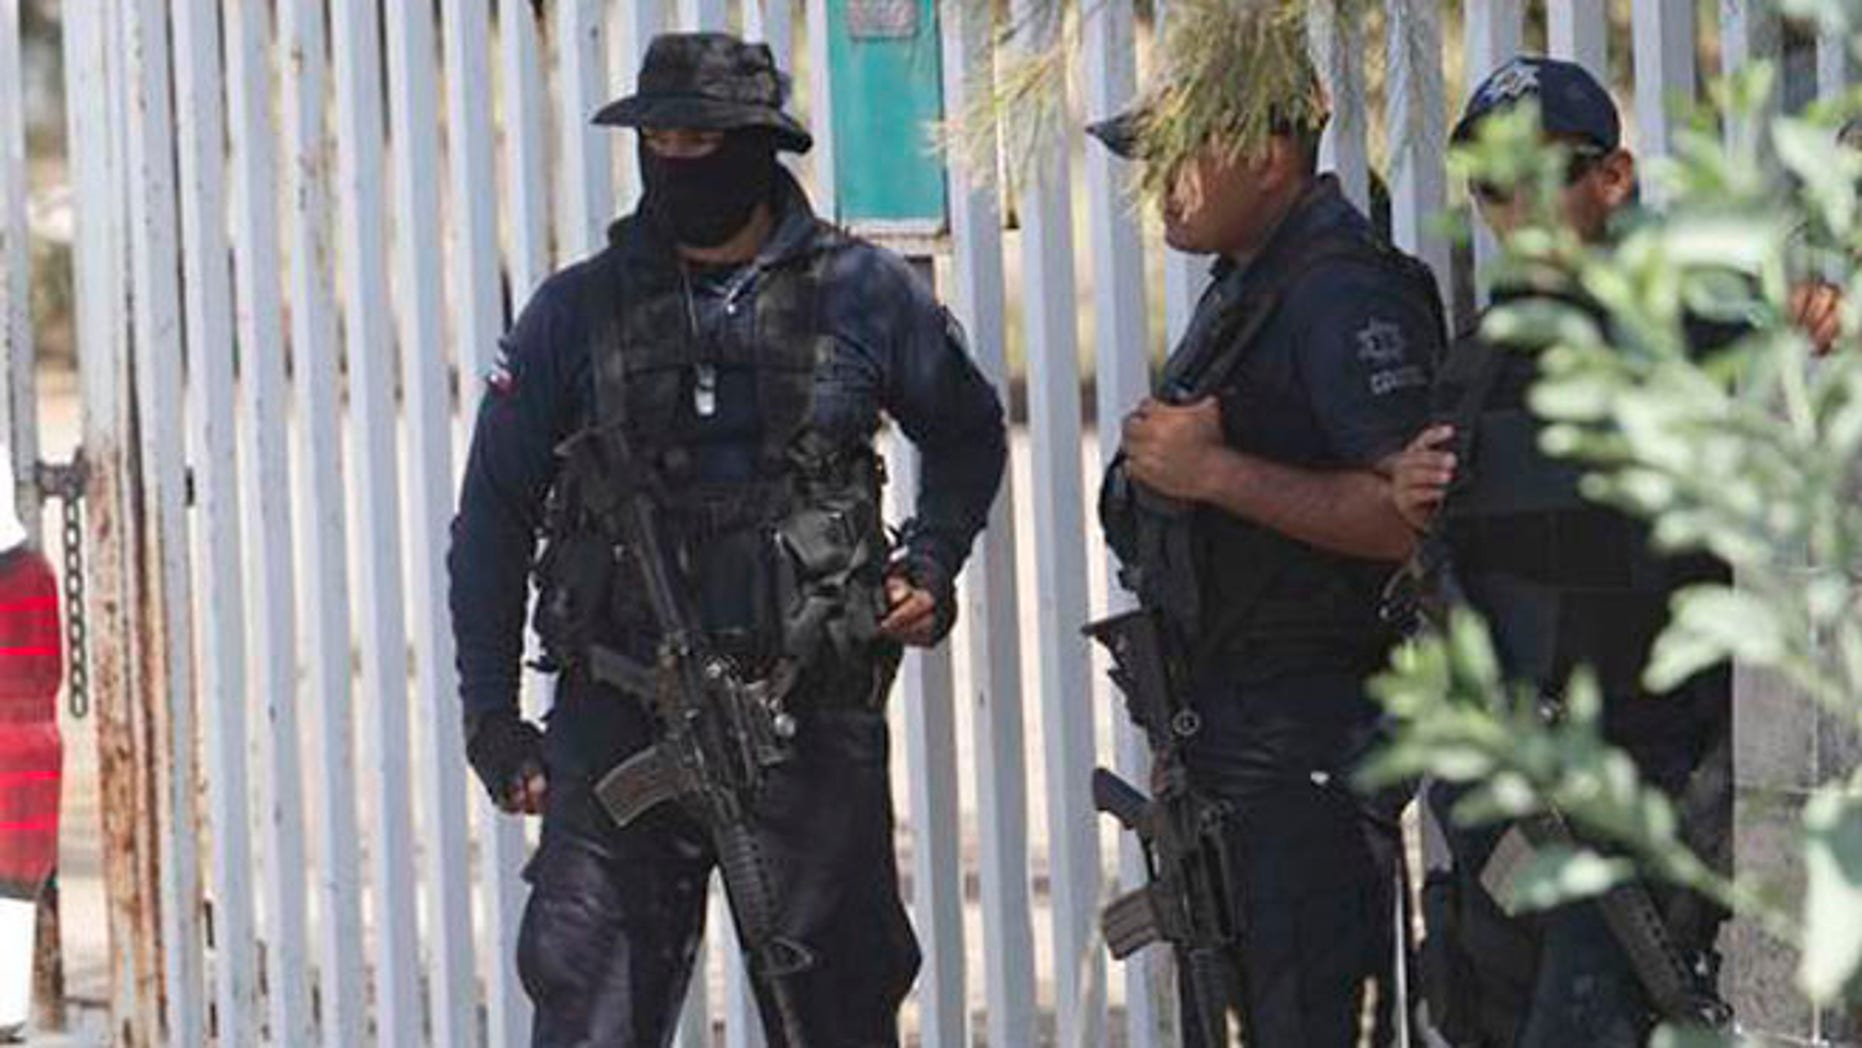 FILE - In this May 22, 2015, file photo, Mexican state police stand guard near the entrance of Rancho del Sol, where a shootout with the authorities and suspected criminals happened near Vista Hermosa, Mexico. Mexico's National Human Rights Commission said on Thursday, Aug. 18, 2016, that it has concluded that 22 people were arbitrarily executed by federal police during the event. Commission President Luis Raul Gonzalez Perez said their investigation revealed a range of human rights abuses on the part of government forces. (AP Photo/Refugio Ruiz, File)